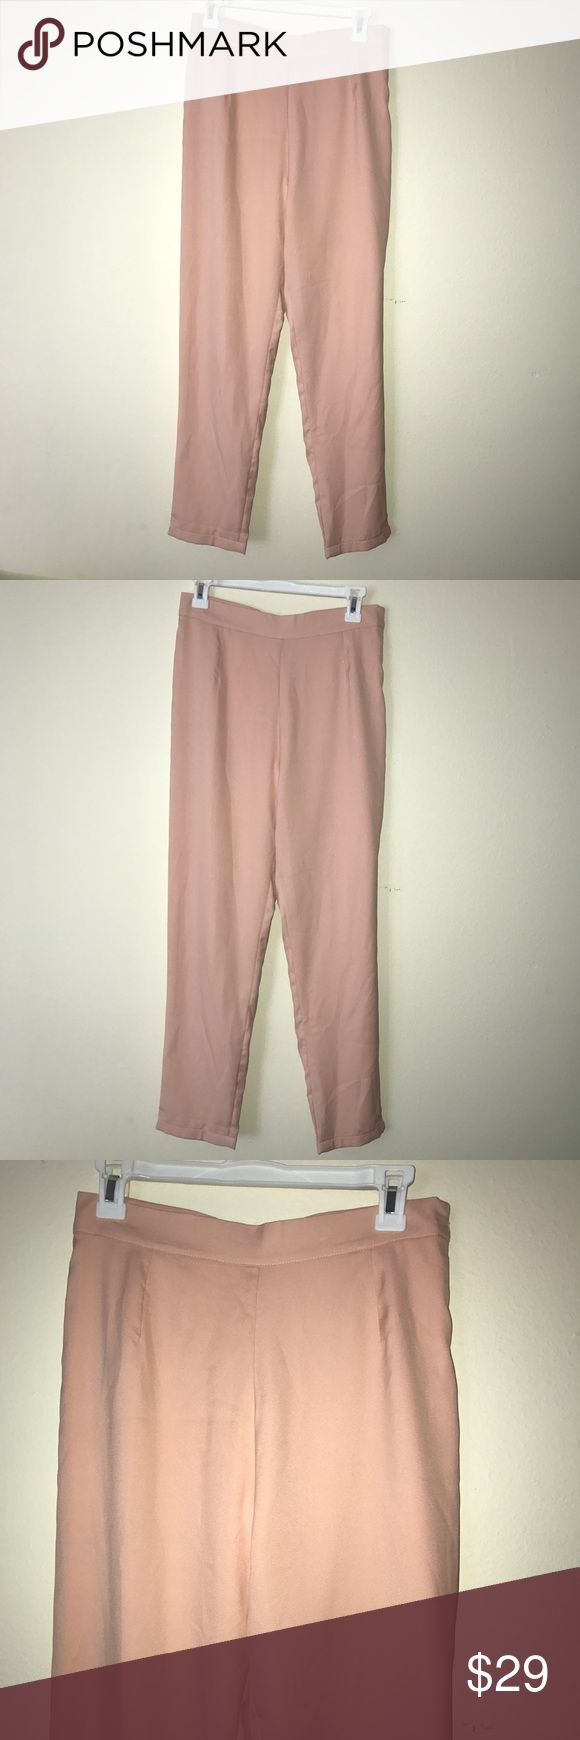 Light pink lulu's trousers There is a zipper on the side Offers accepted Lulu's Pants Trousers